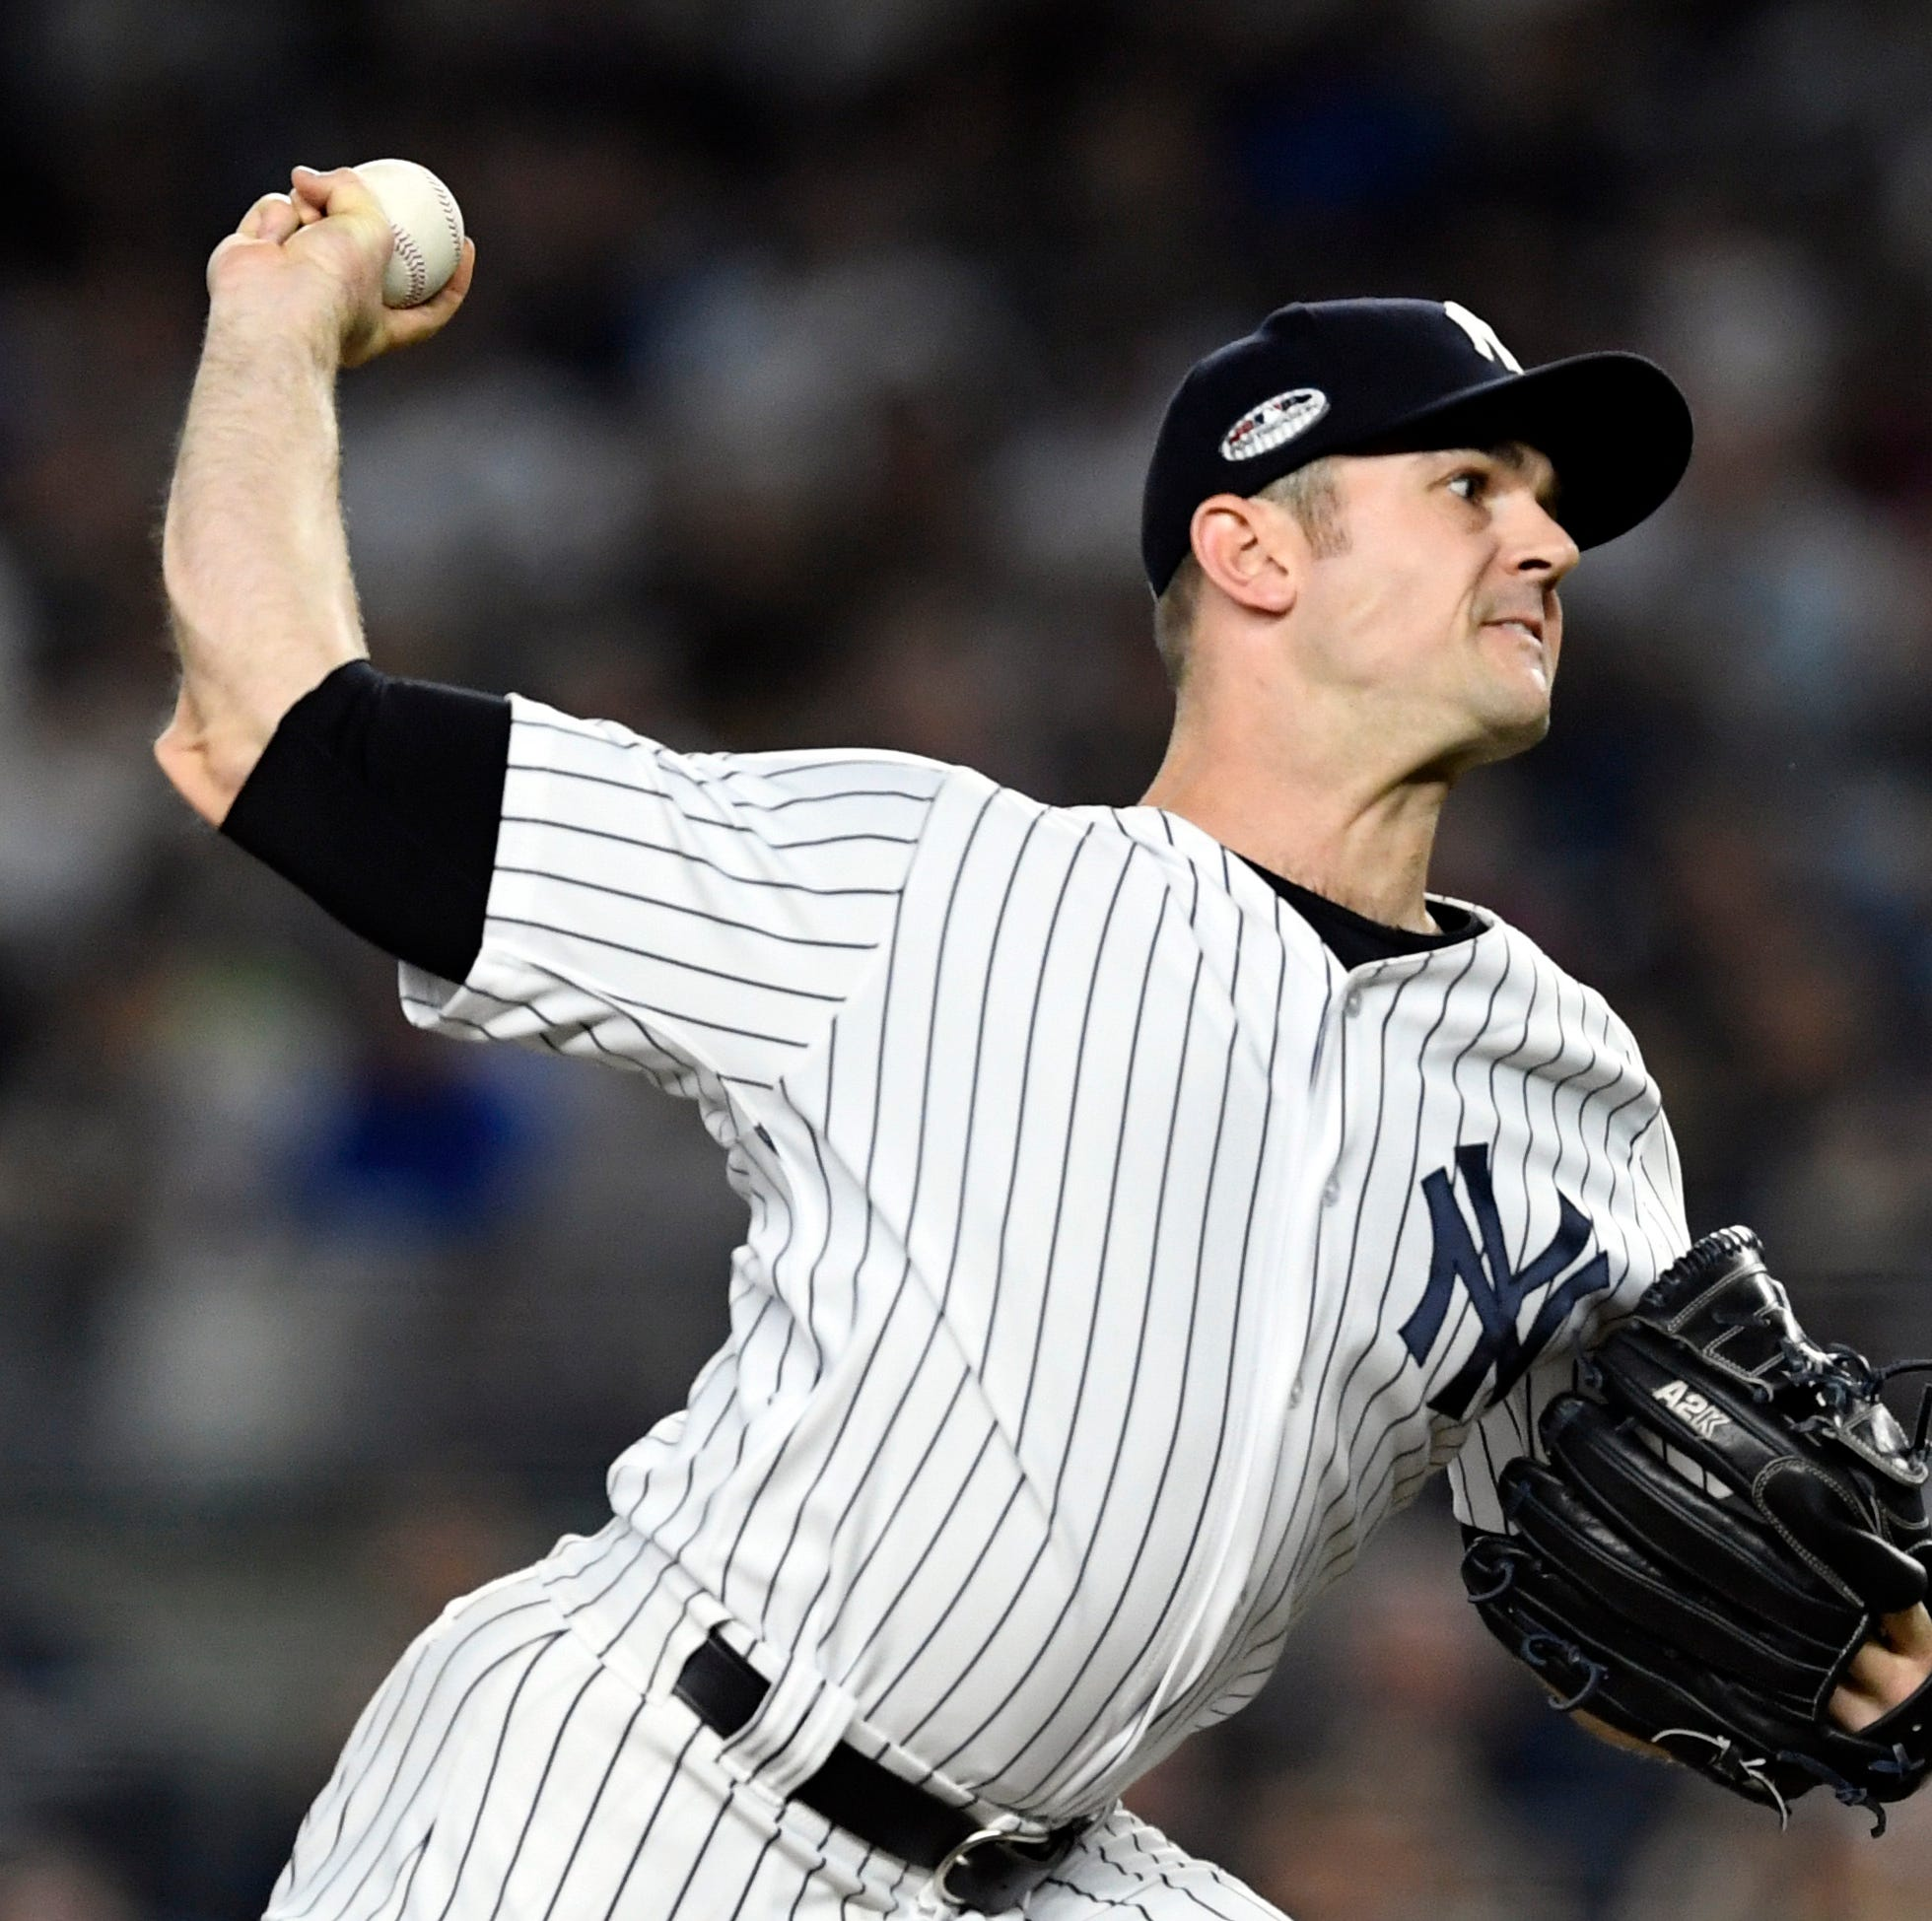 Yankees exit Winter Meetings still seeking bullpen help, as are the Red Sox